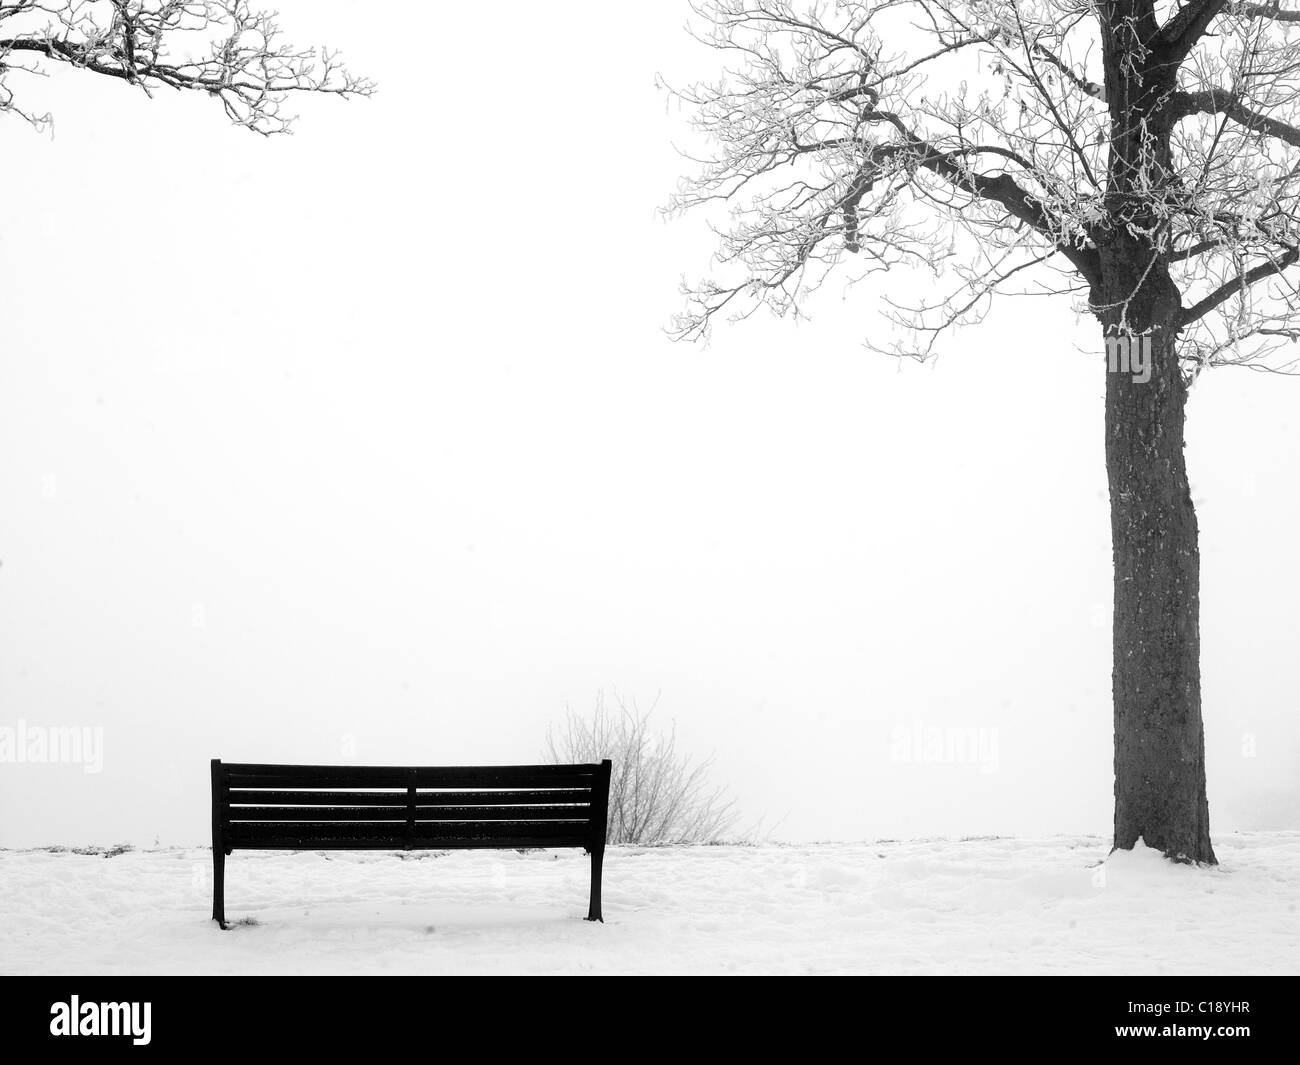 Bench in the snow. - Stock Image